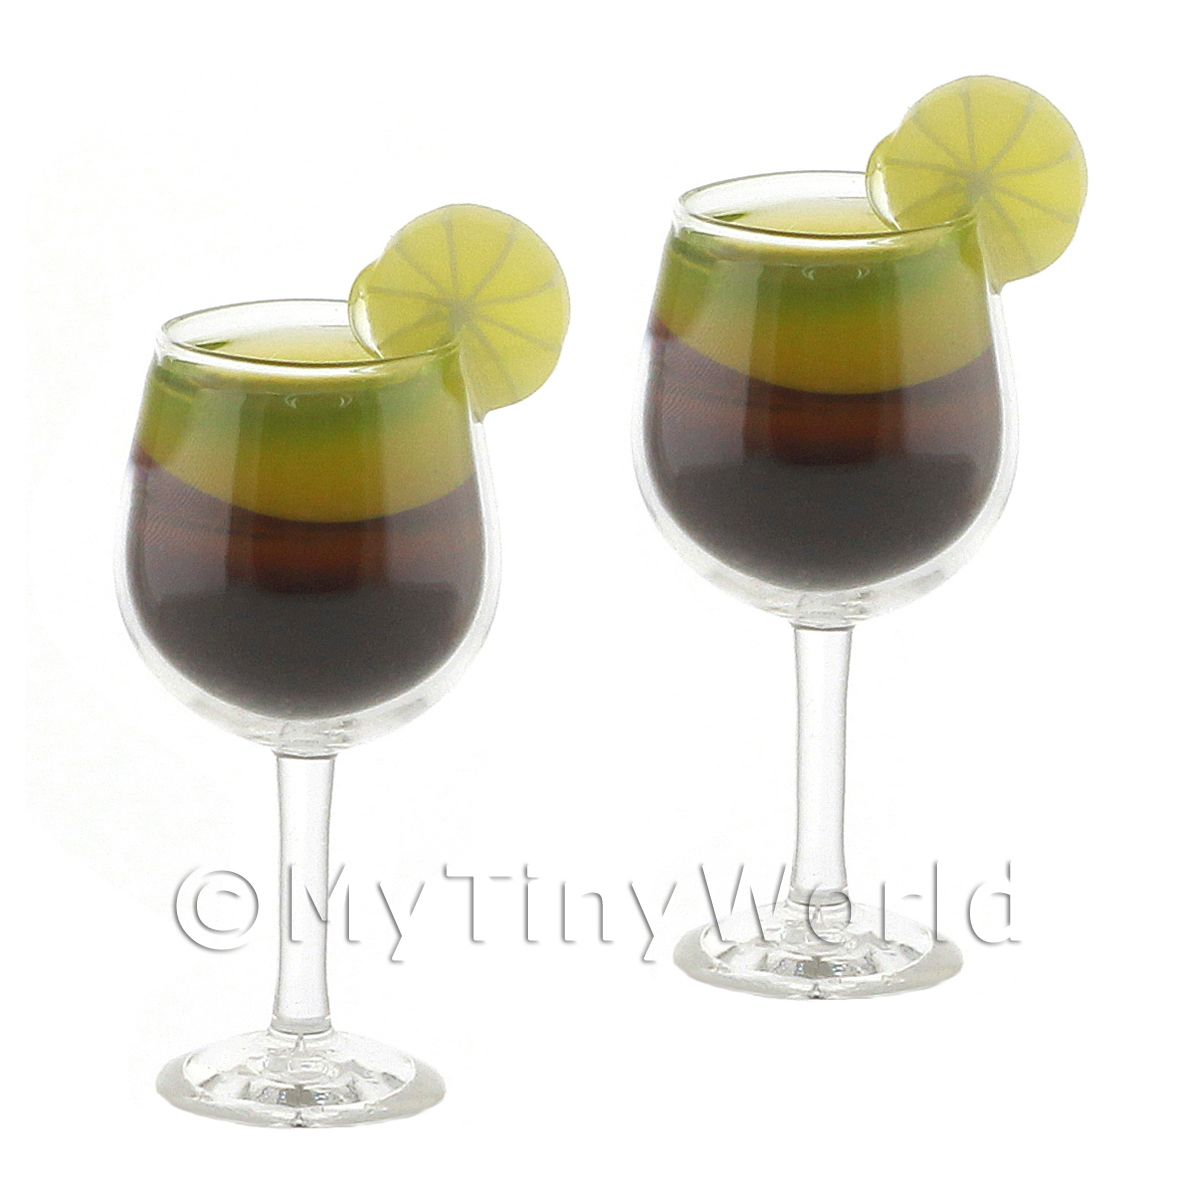 2 Miniature  Melon Midori Cocktails topped with a Slice of Lemon